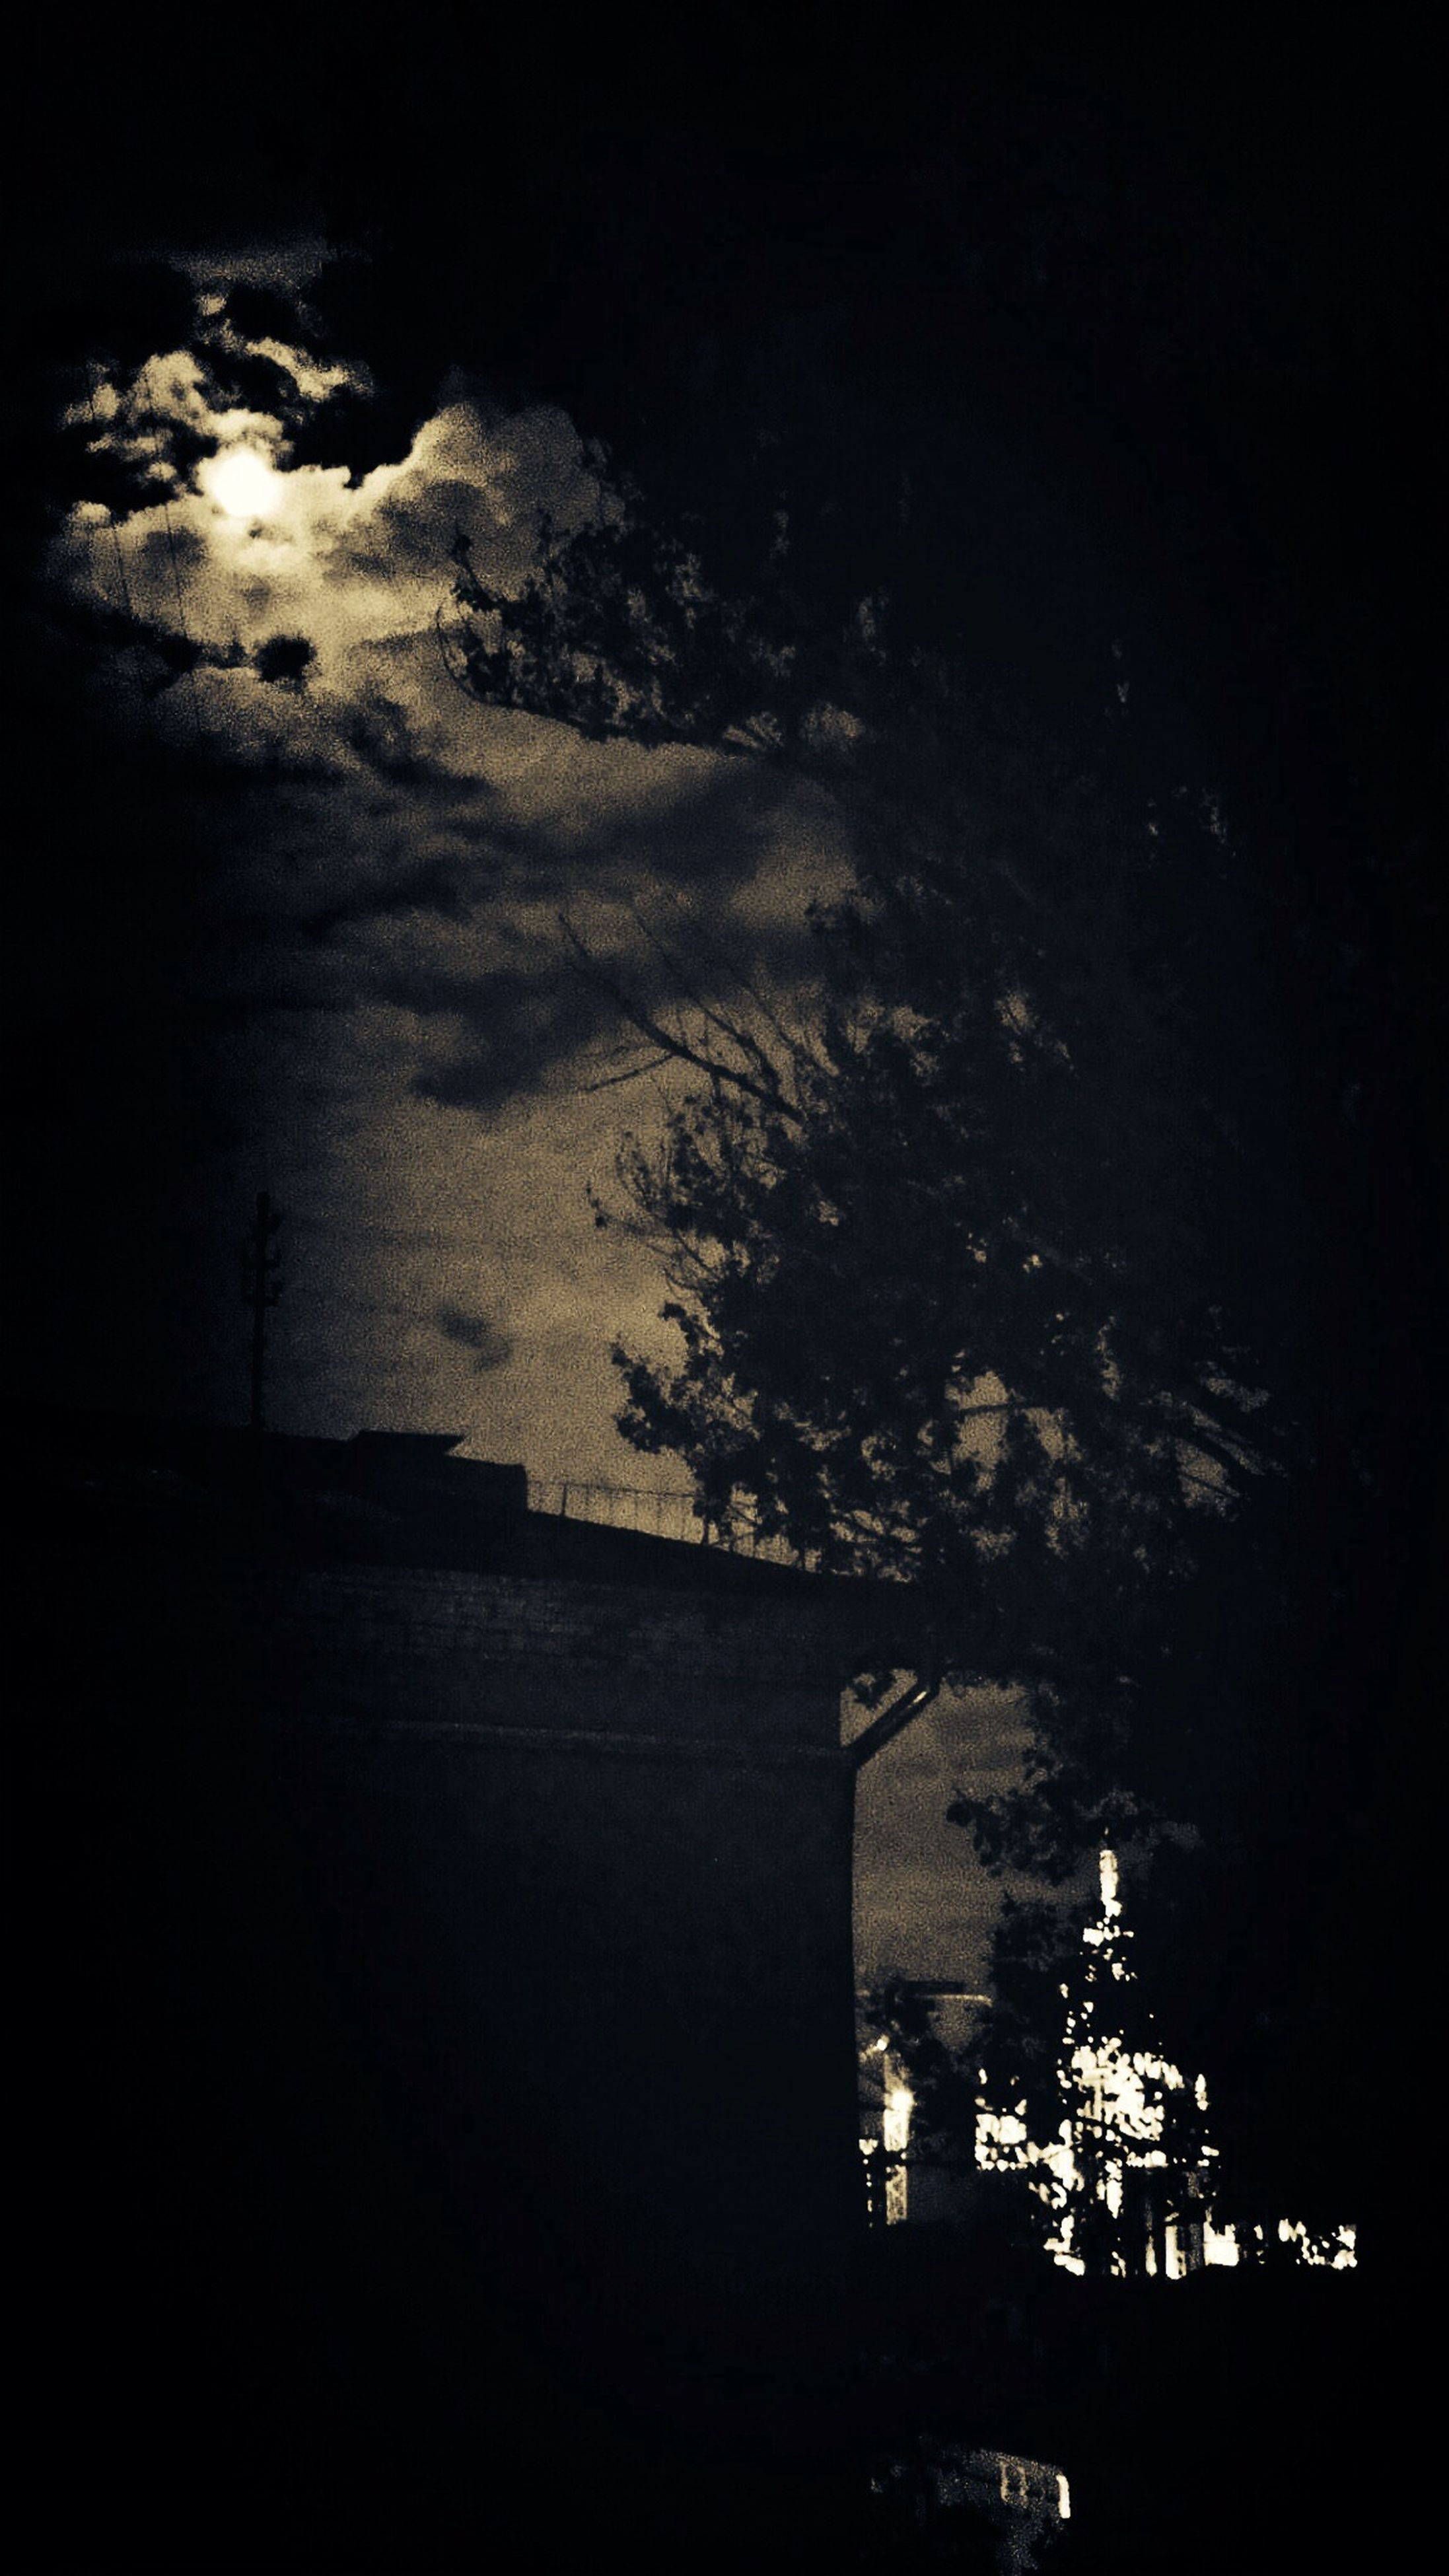 architecture, built structure, night, tree, building exterior, illuminated, sky, water, dark, city, bridge - man made structure, high angle view, river, outdoors, nature, no people, connection, dusk, silhouette, street